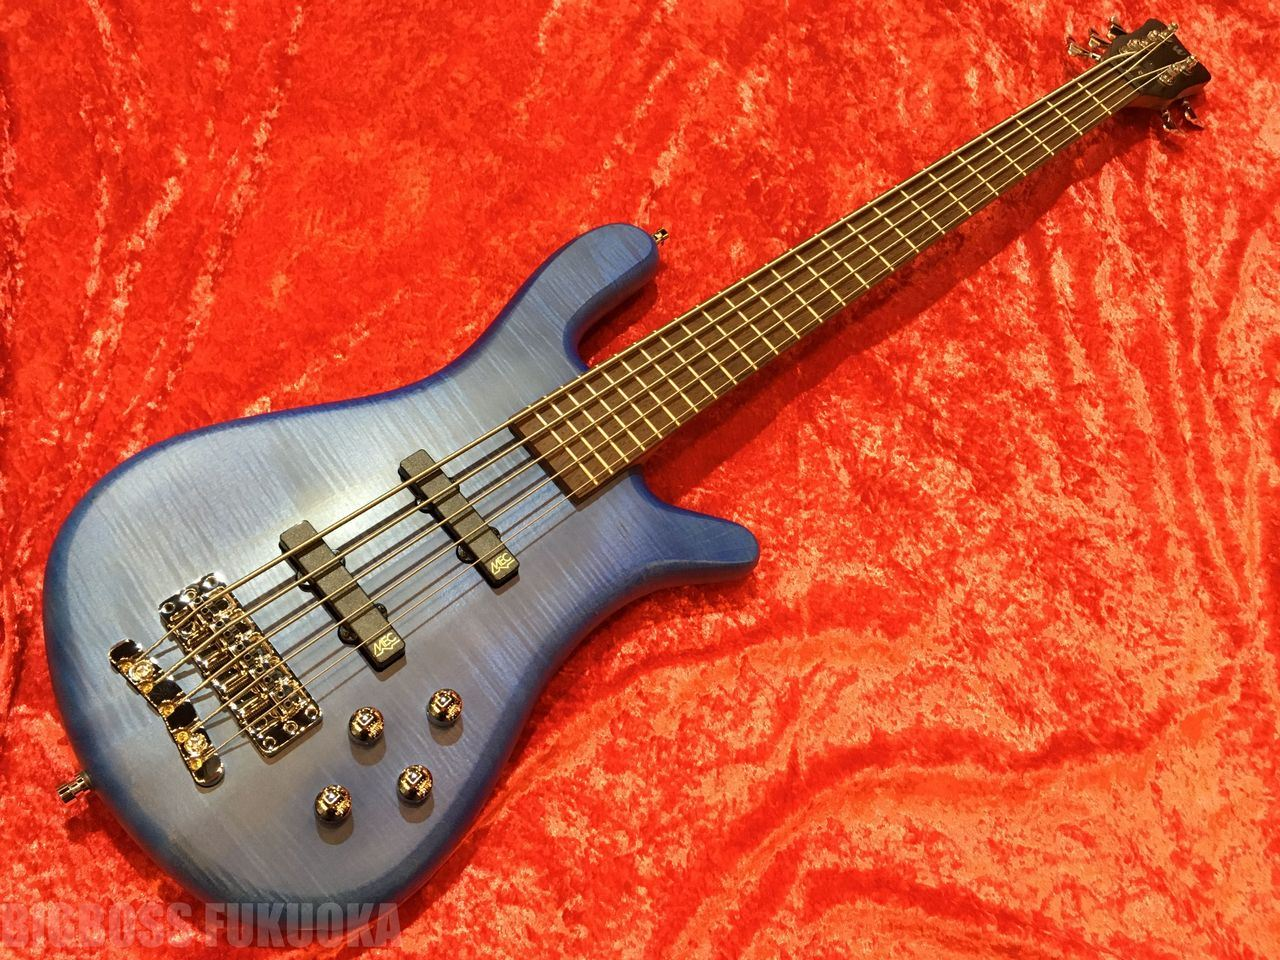 【ポイント10倍】【即納可能】Warwick Team Built Streamer LX5 OFC (Ocean Blue) 福岡店